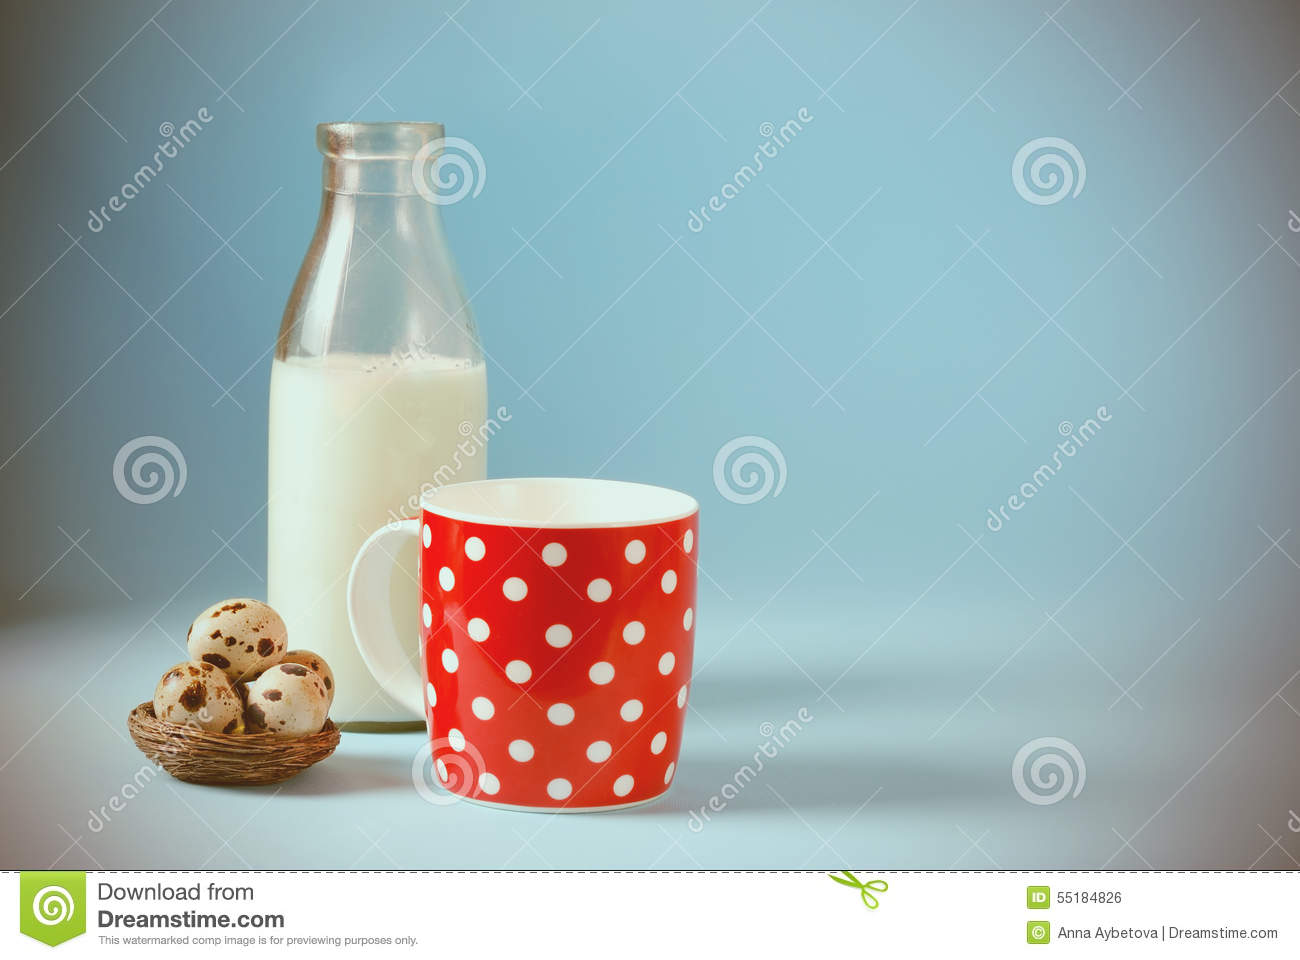 Vintage Still Life With Red In Polka Dot Cup Of Milk